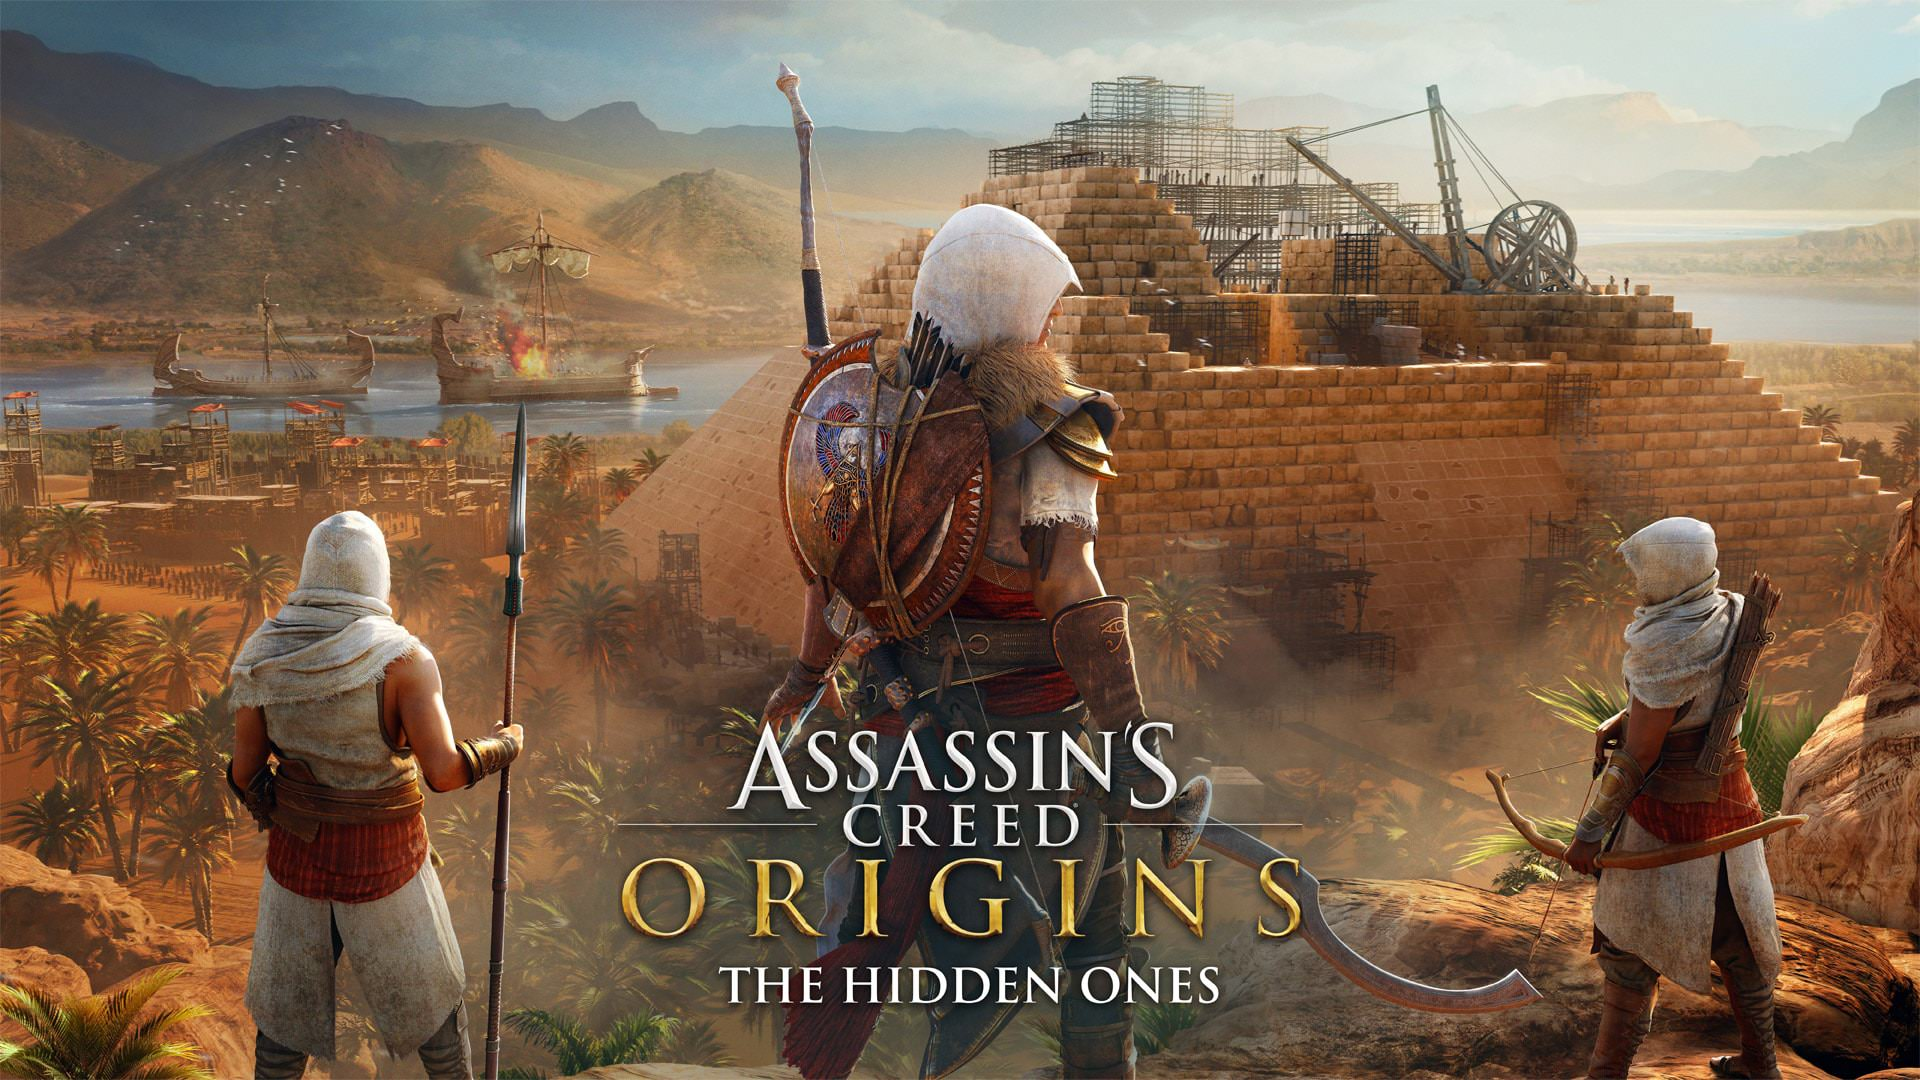 [Trailer] Assassin's Creed: Origins 'The Hidden Ones' launches 23rd Jan.